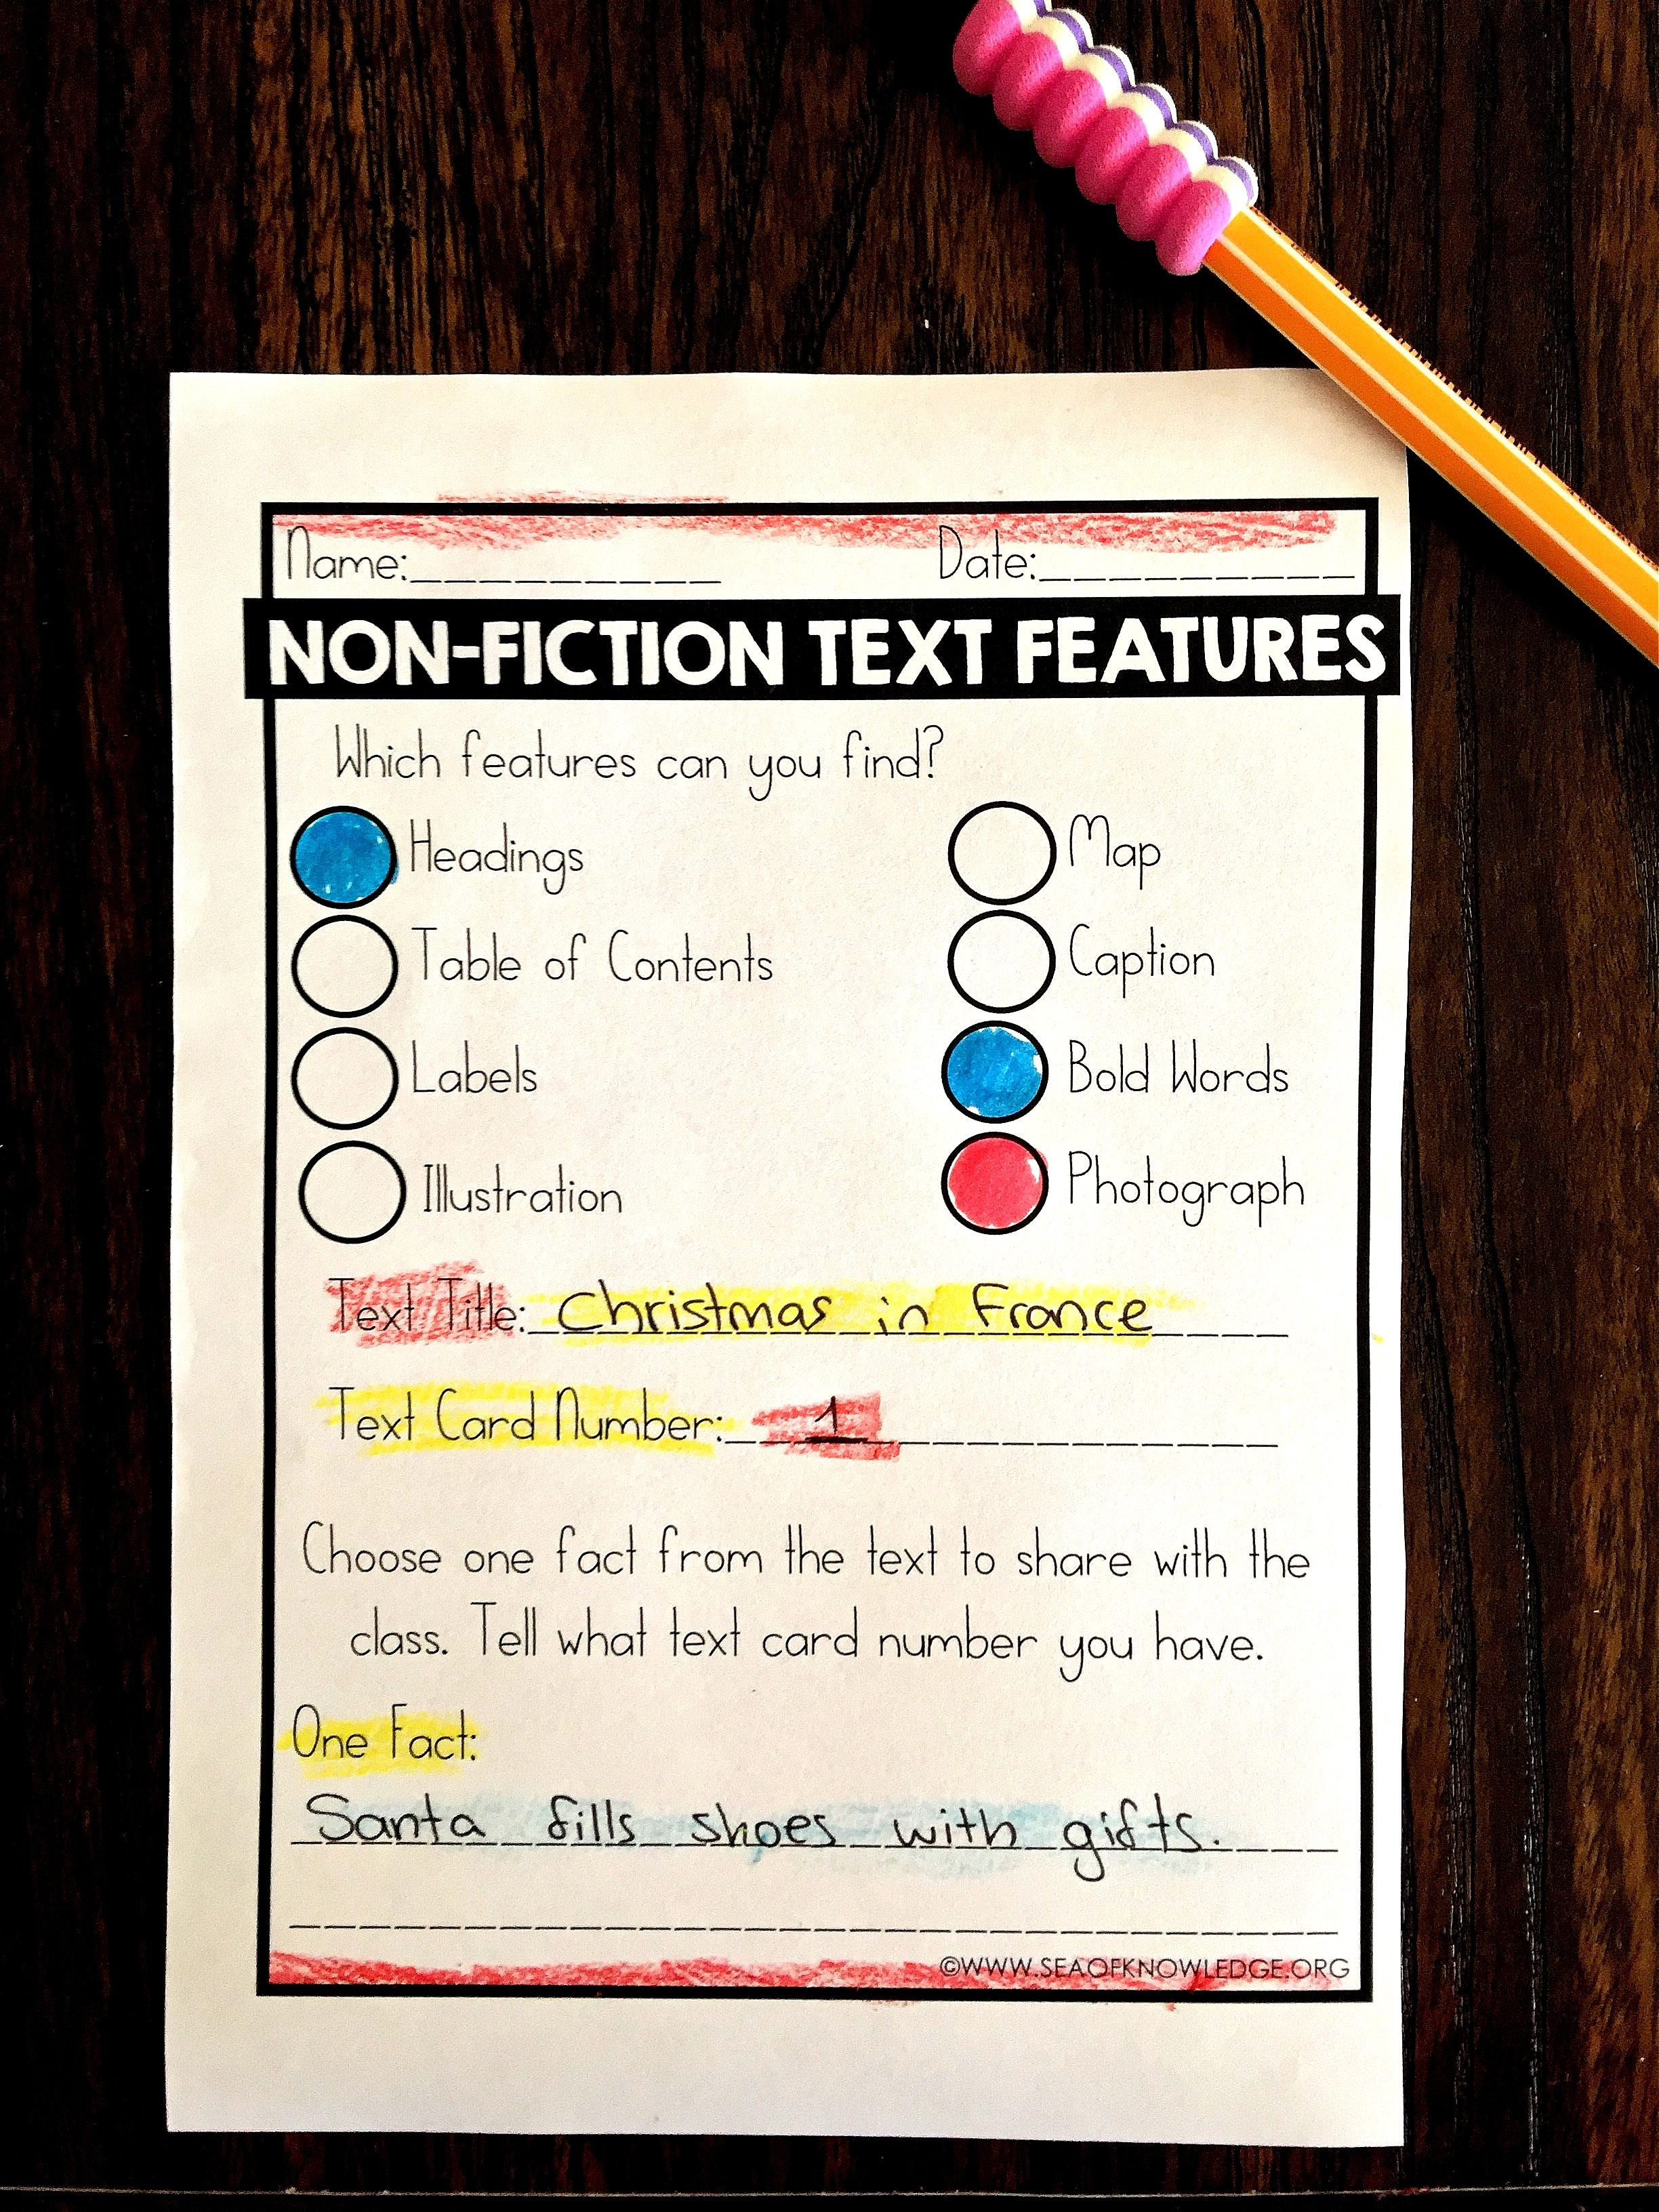 Nonfiction Text Features Worksheets Free Sea Of Knowledge Text Features Worksheet Text Features Nonfiction Text Features